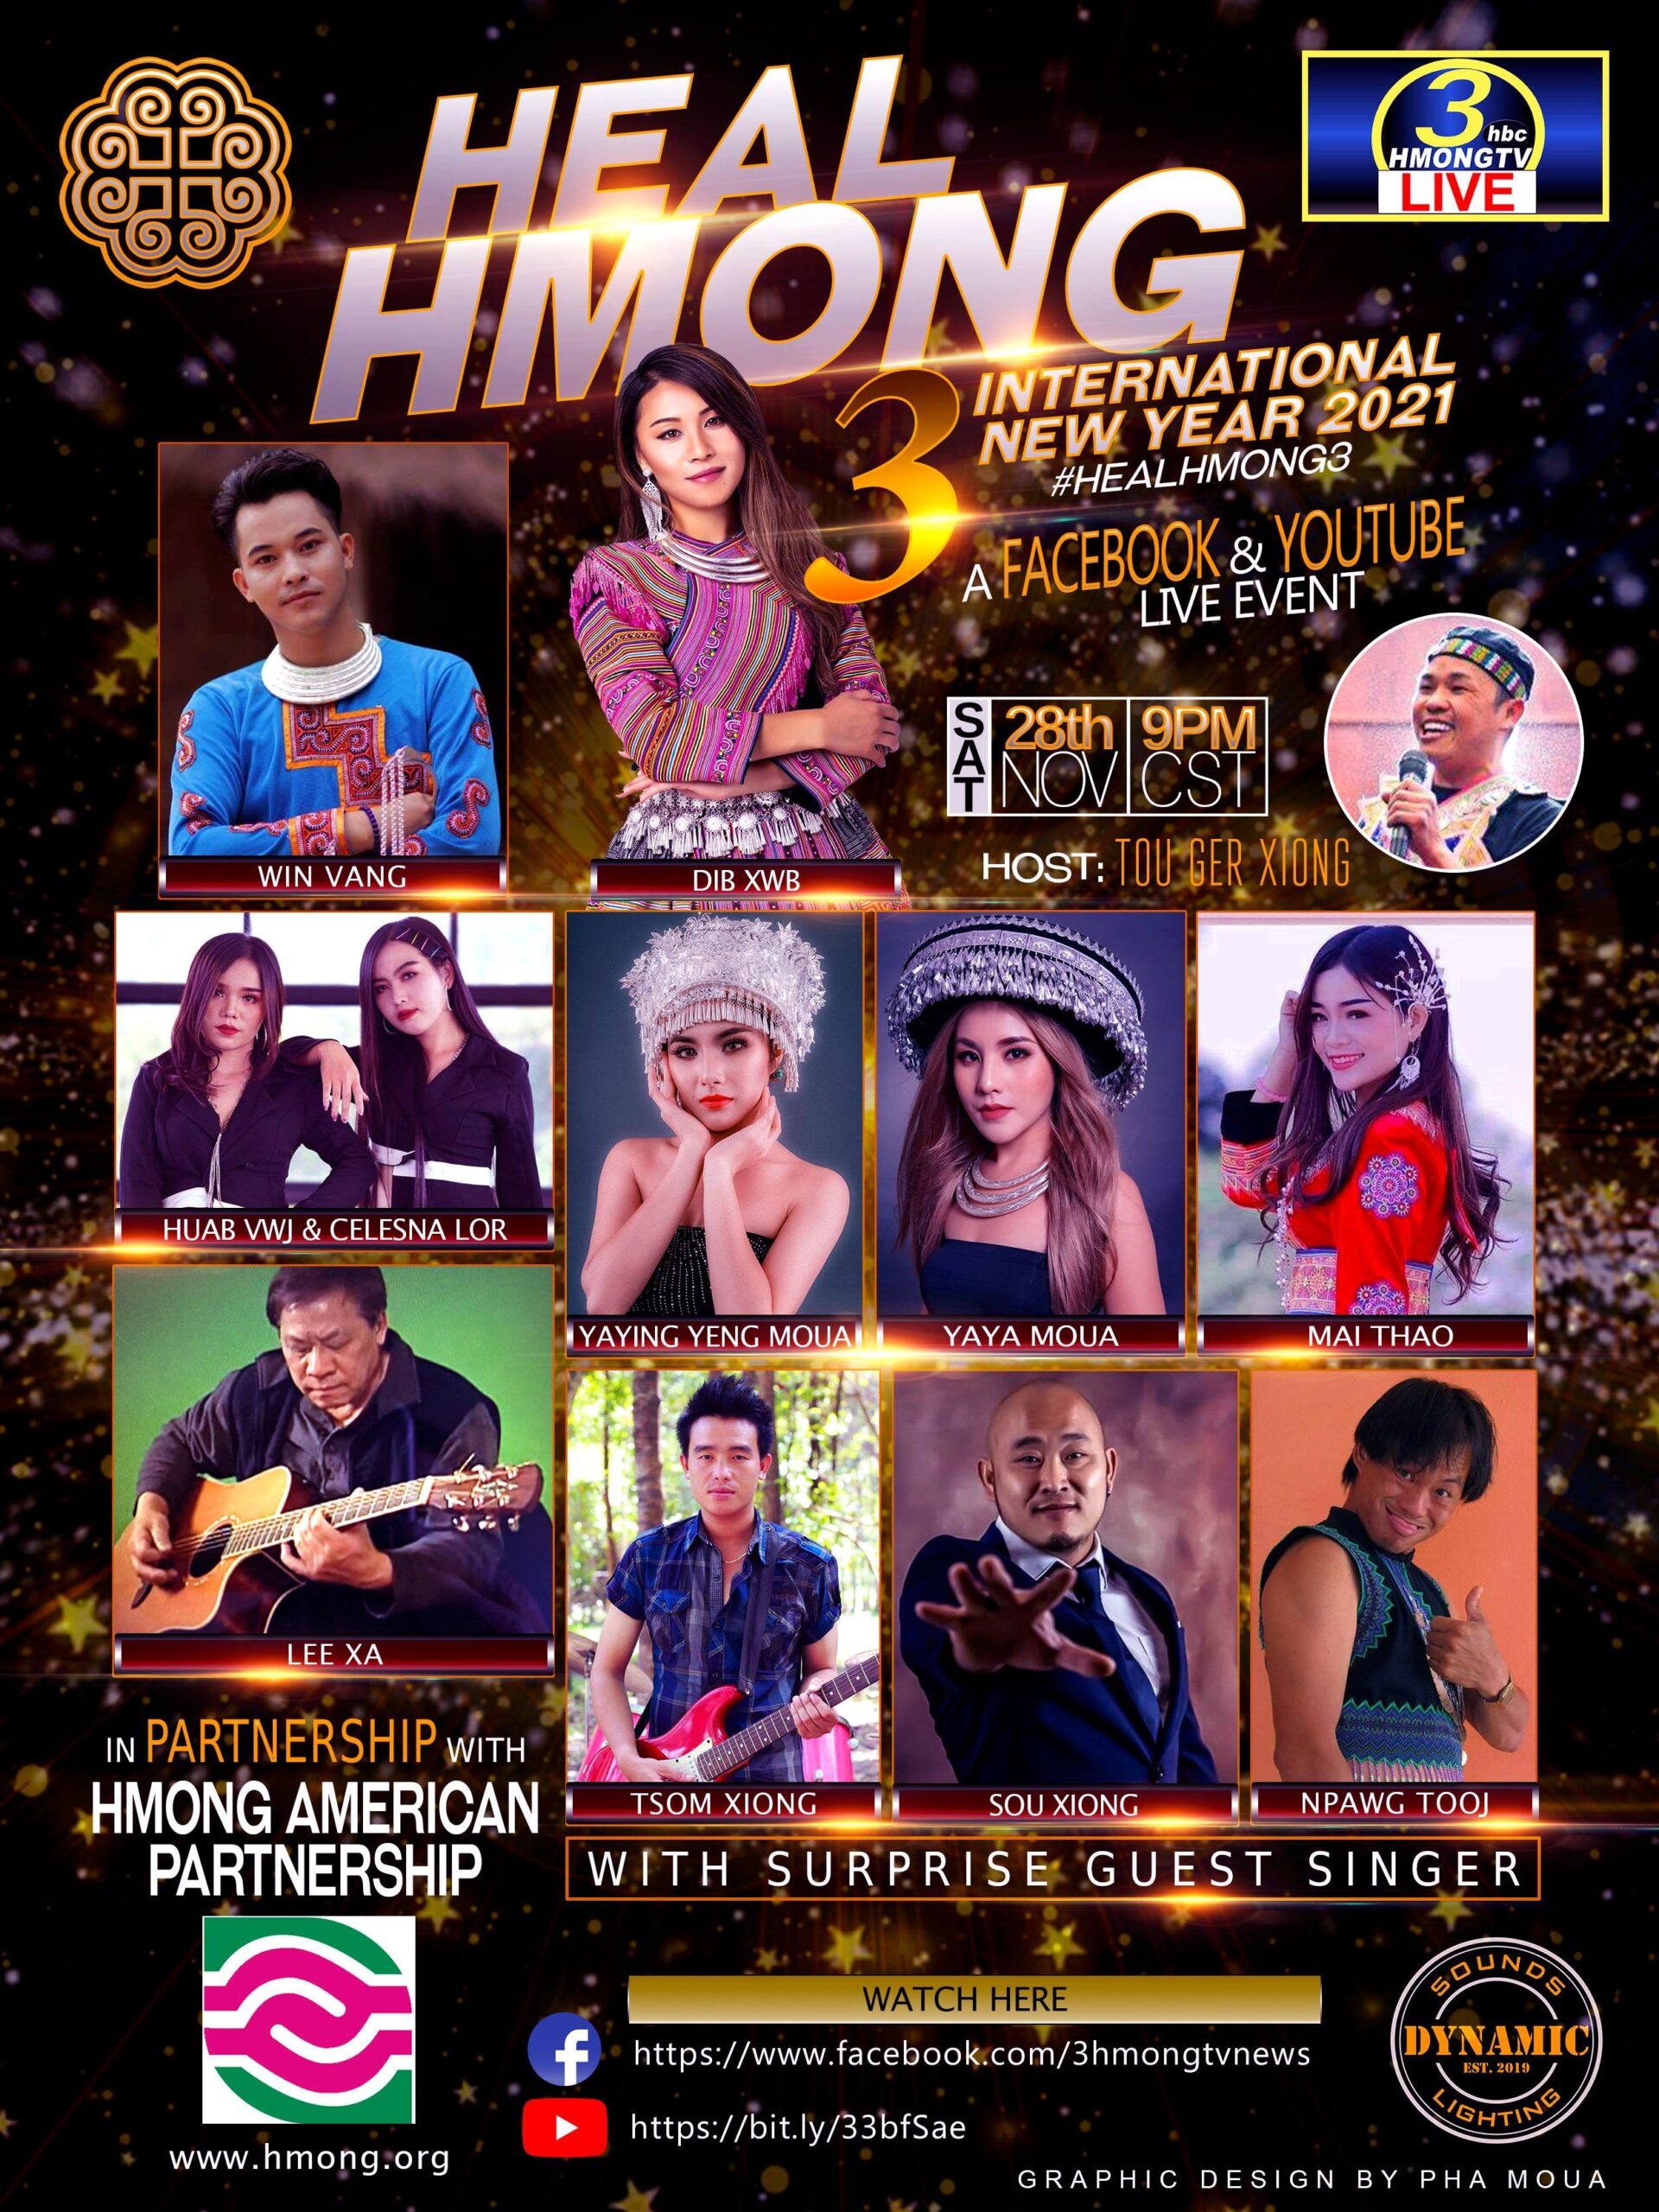 GET READY FOR HEALHMONG 3, NOVEMBER 28 AT 9PM CENTRAL